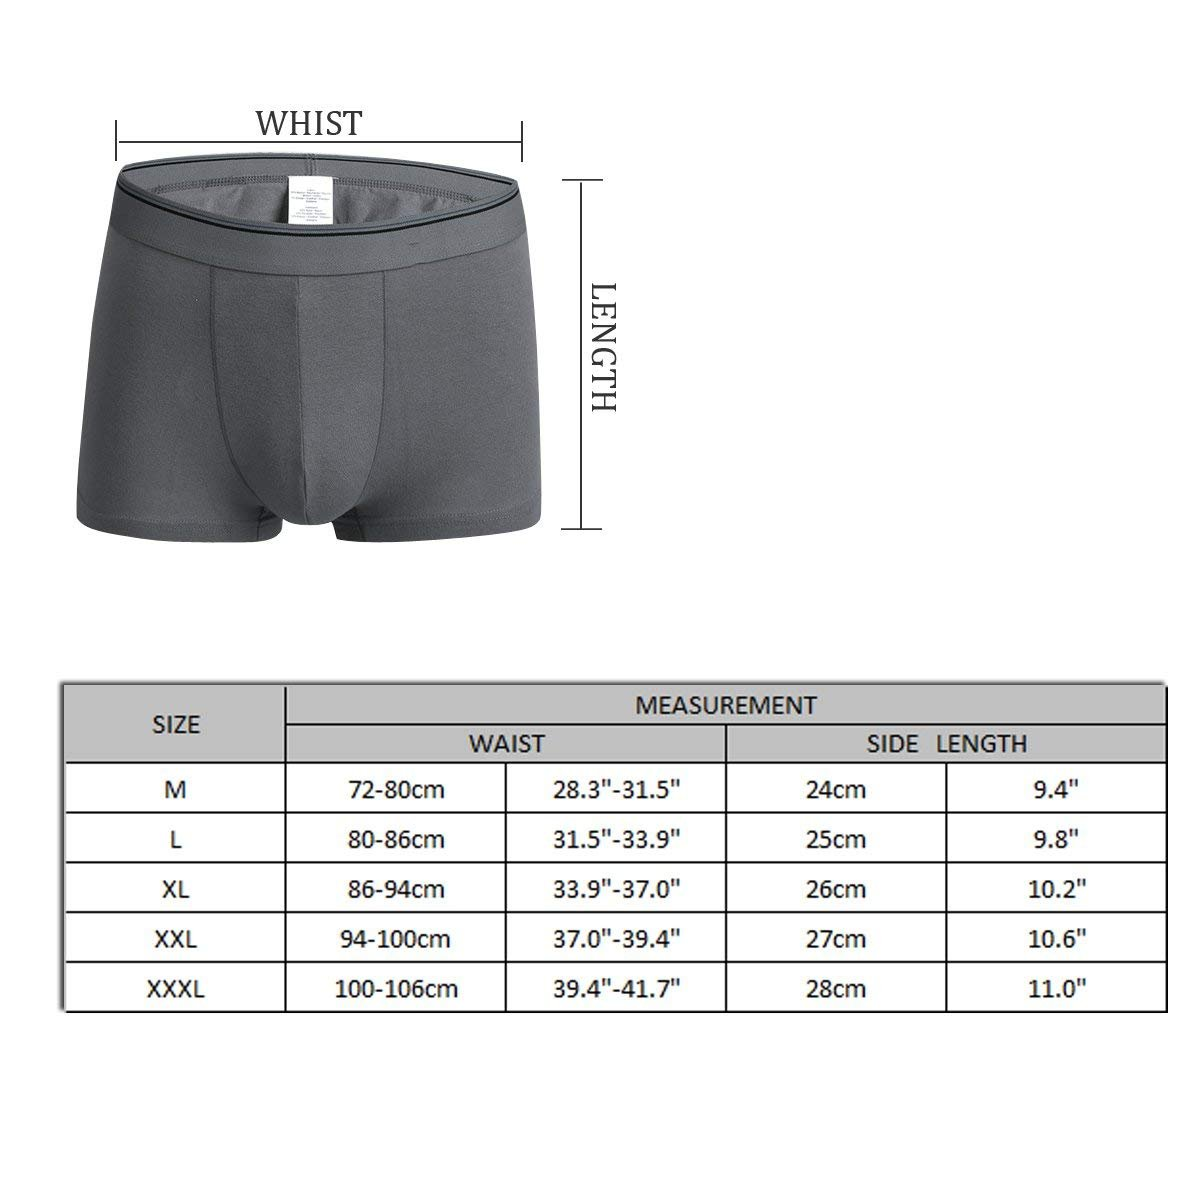 Ghhpws Mens Llama-Corn Underwear Cotton Boxer Briefs Stretch Low Rise Trunks Black